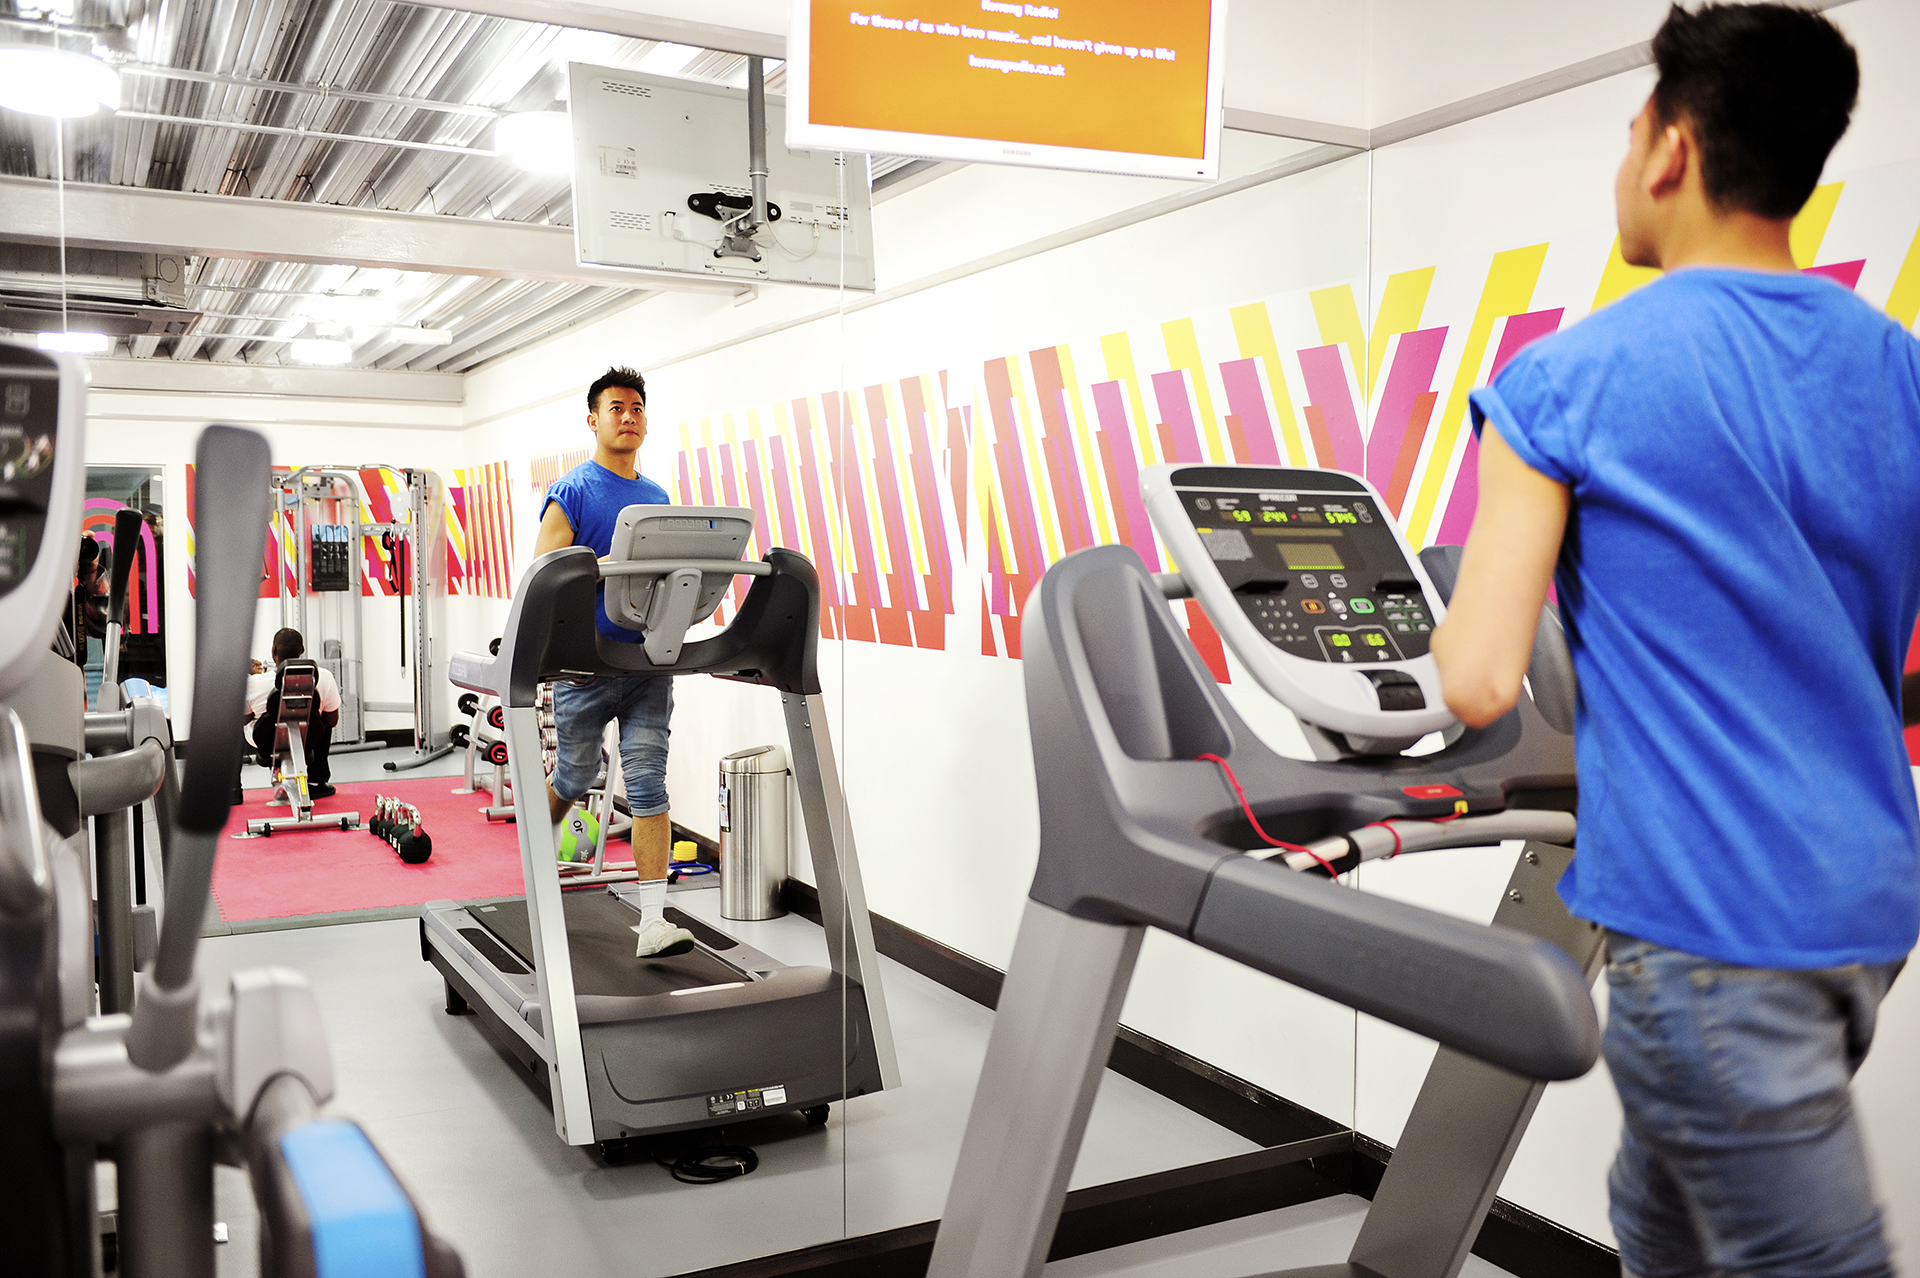 Student using the gym facilities at Scape East student residences